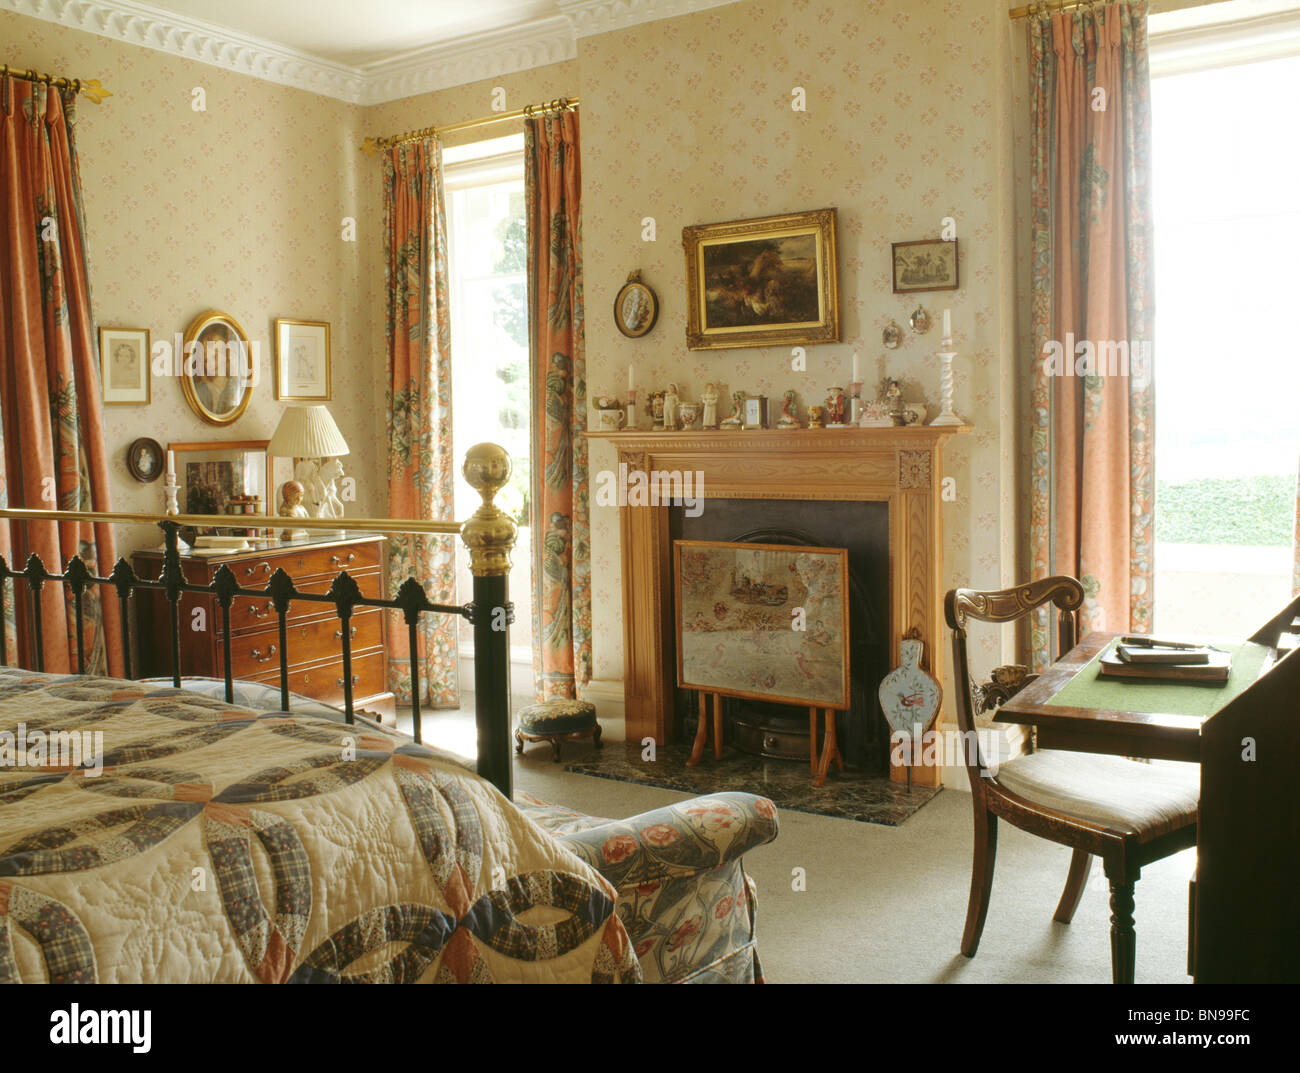 Antique furniture bedroom - Stock Photo Traditional Country Bedroom With Antique Furniture And Neutral Wallpaper And Pine Fireplace With Fire Screen